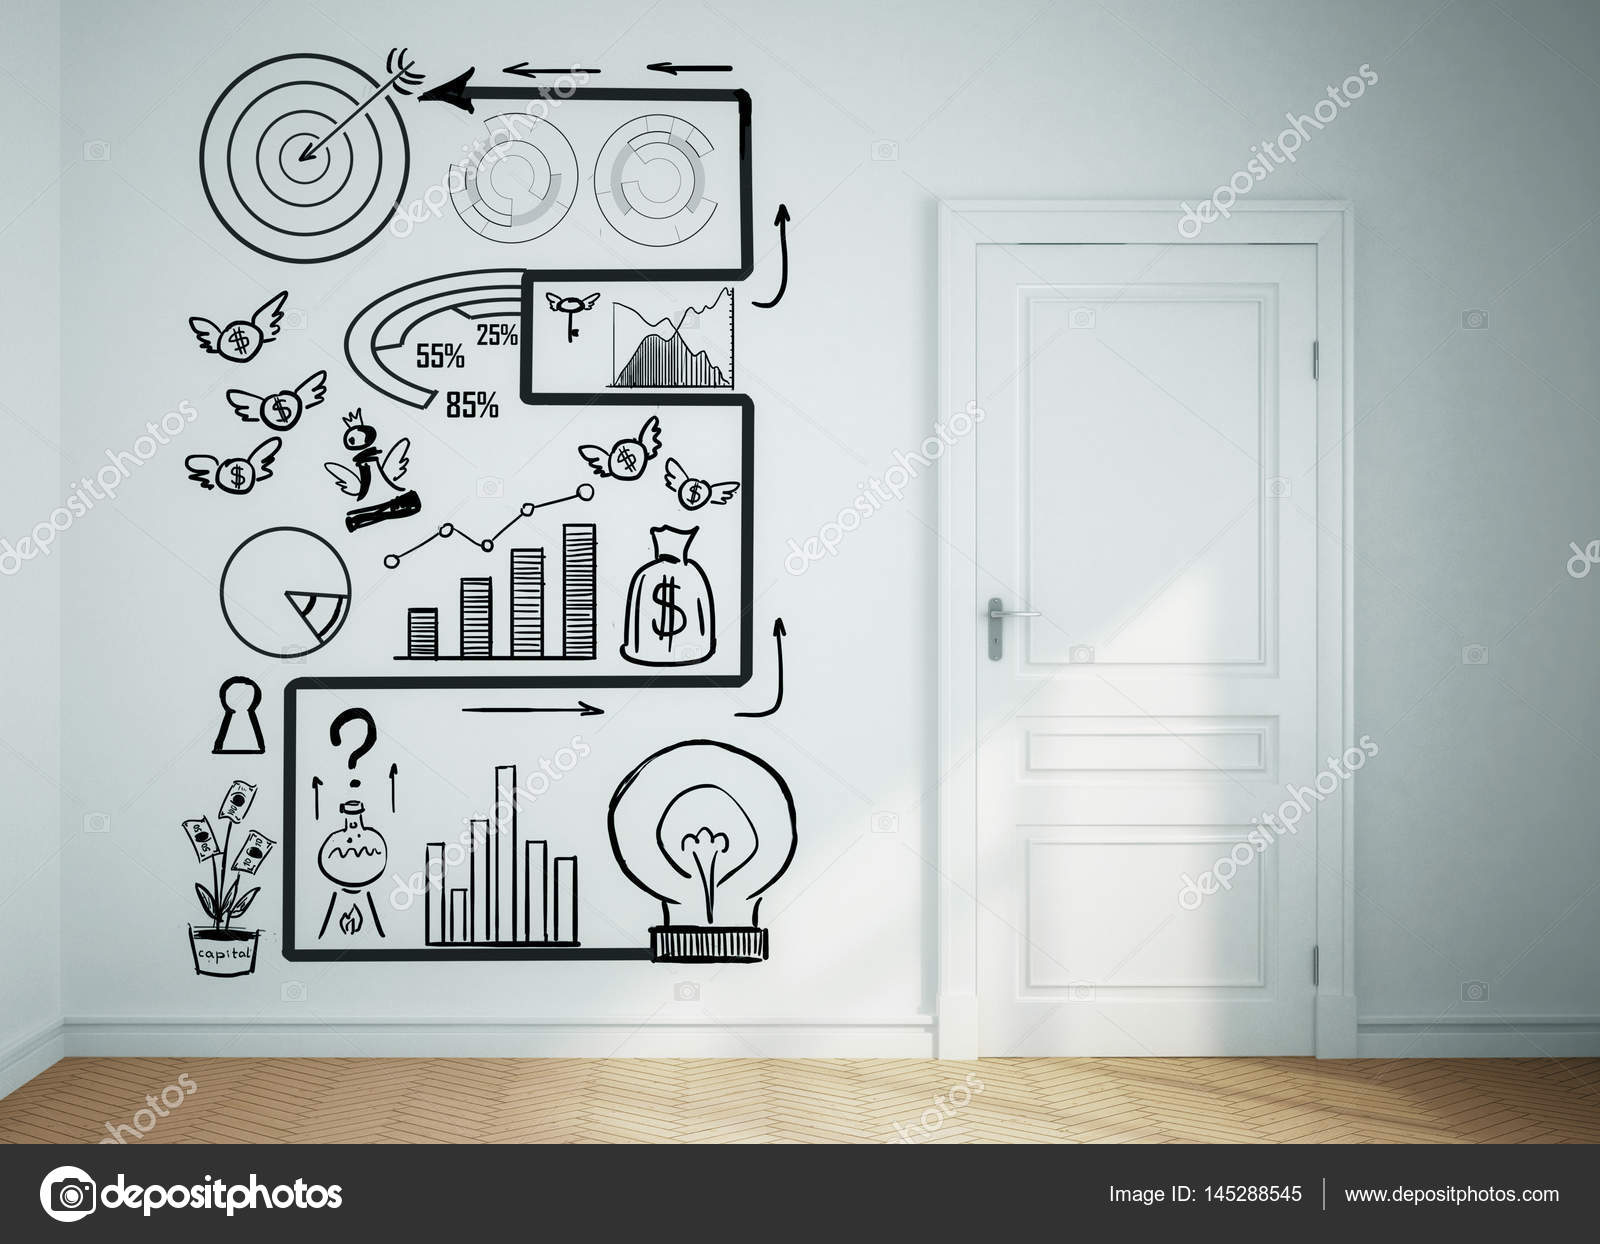 Concrete Room With White Door And Business Sketch On Wall